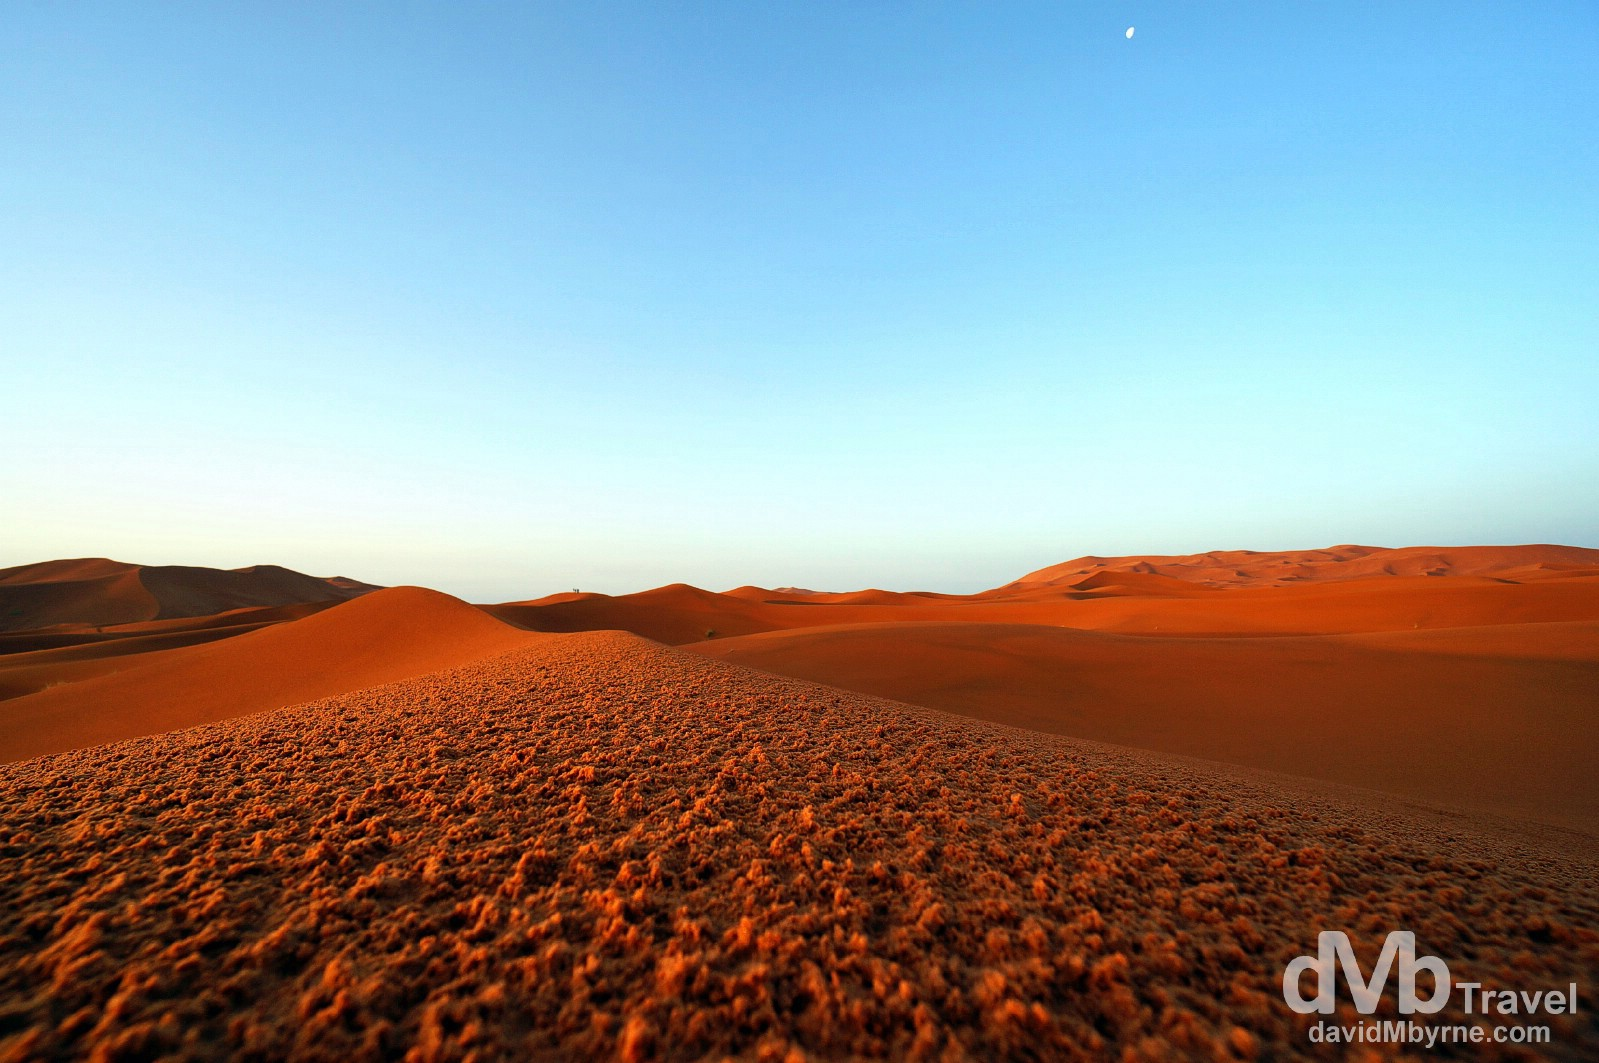 The moon is still in the sky as the sun rises over the red sands of the Erg Chebbi sand dunes in Morocco. May 19th, 2014.